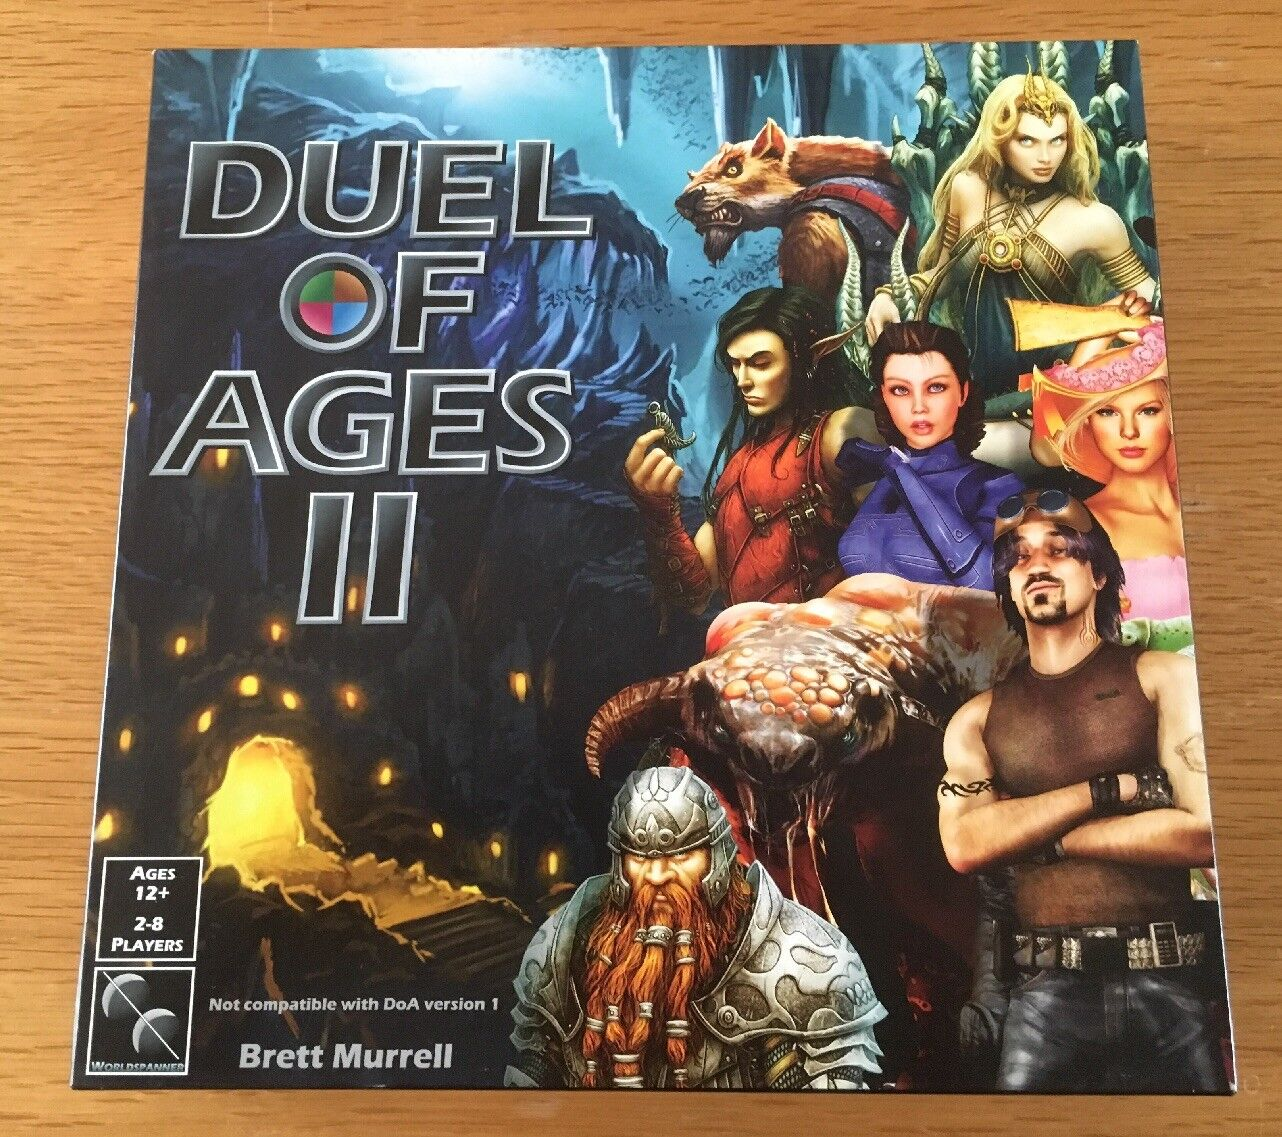 Dual Of Ages II RPG Board Game Boxed Set RARE